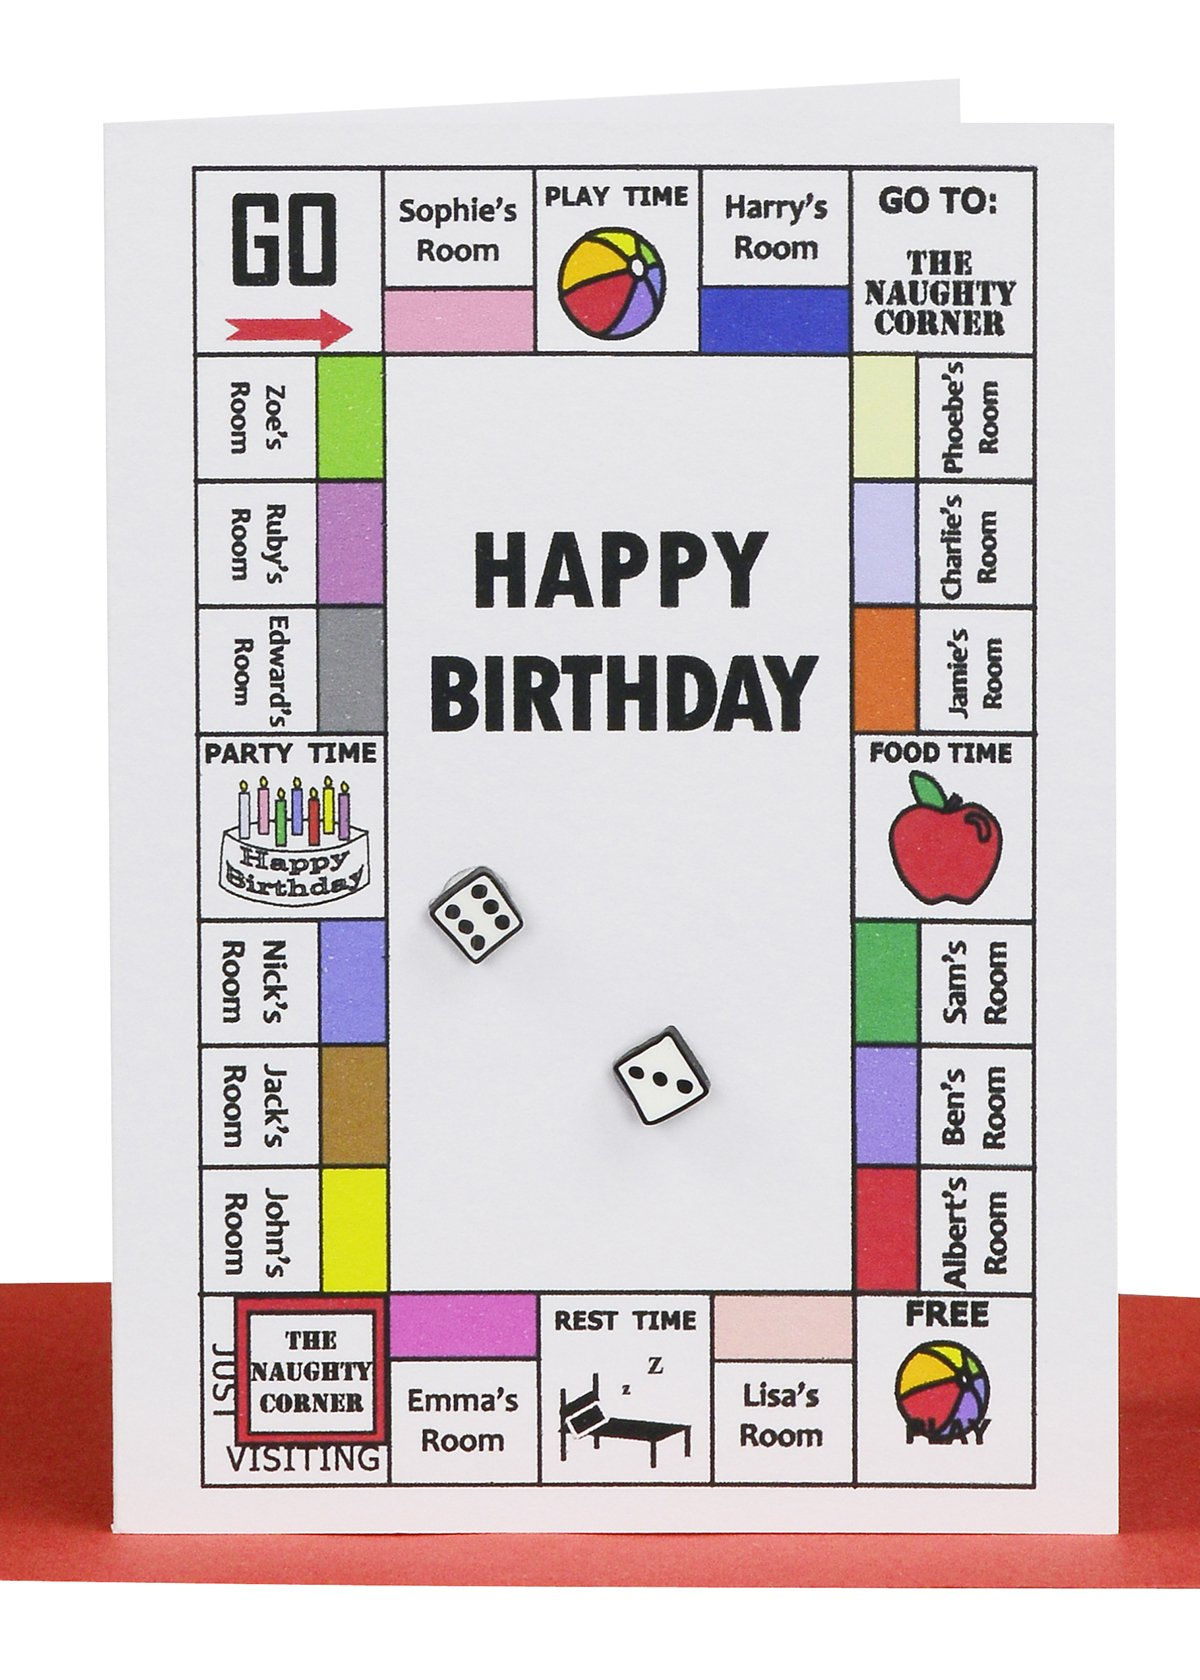 Happy birthday gift card board game lils online wholesale cards happy birthday gift card monopoly game bookmarktalkfo Choice Image